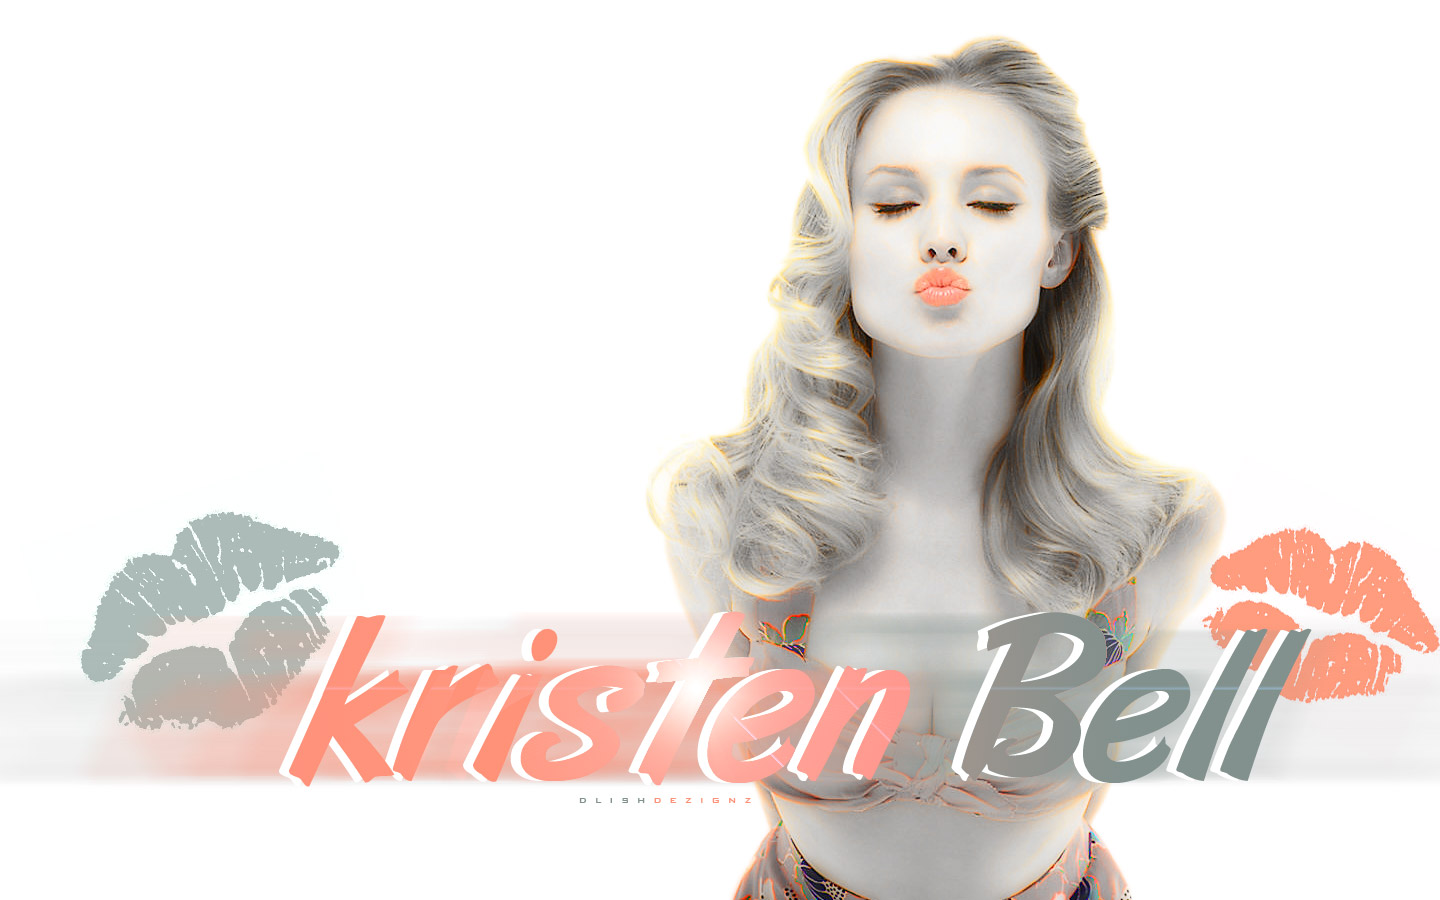 Rex Bell Wallpapers Download Kristen Bell wallpaper Kristen bell